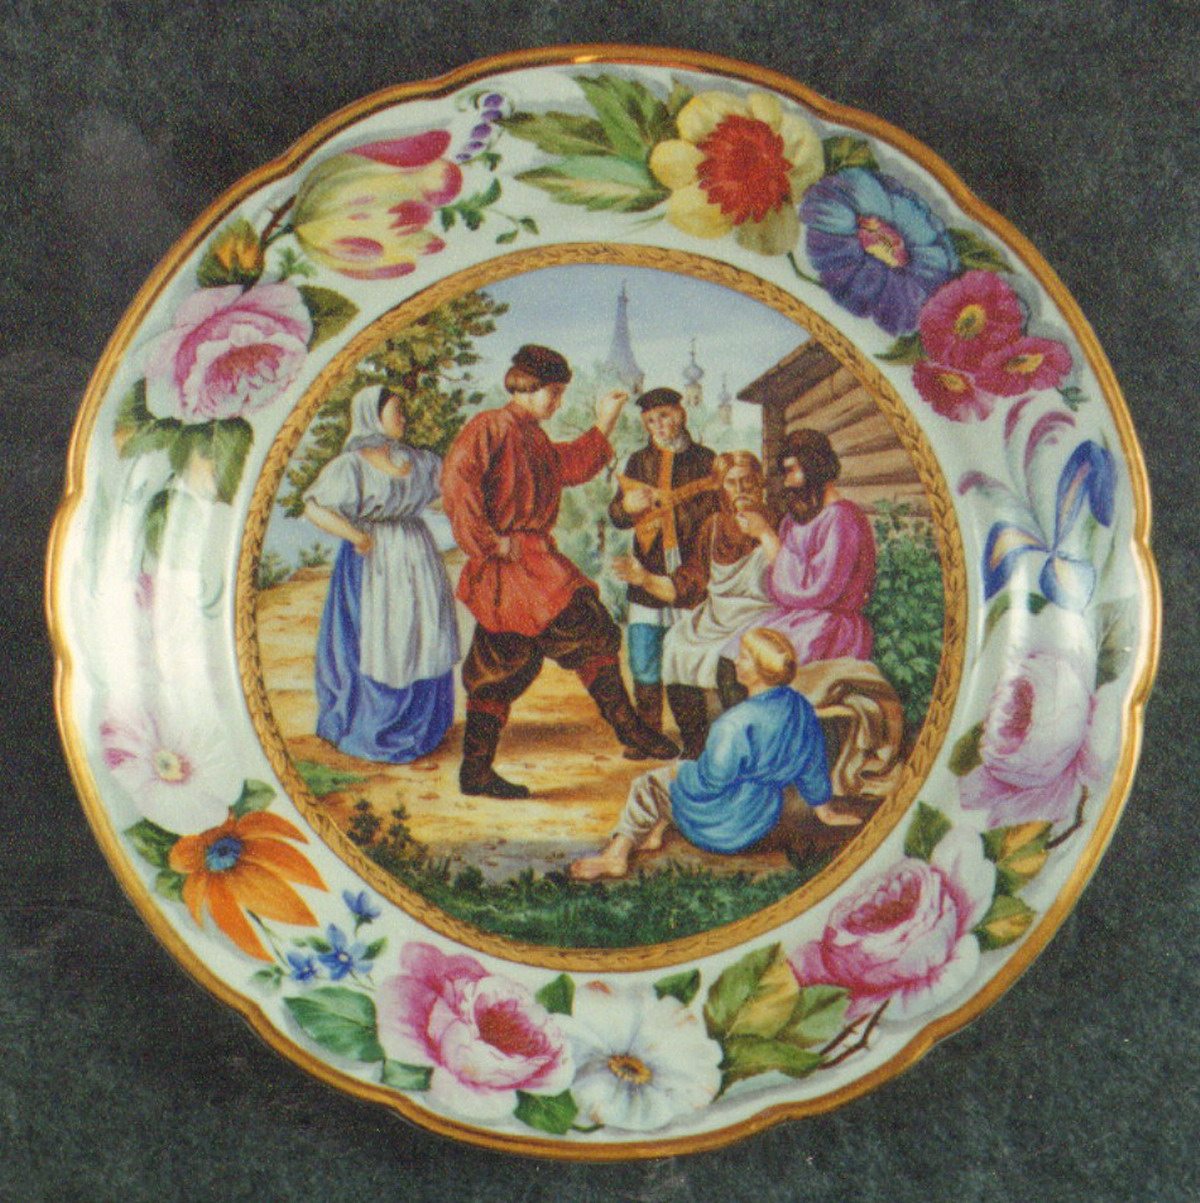 Wall Plate. Country Duncing. Over Glasour Painting on Porcelain. D 27 cm